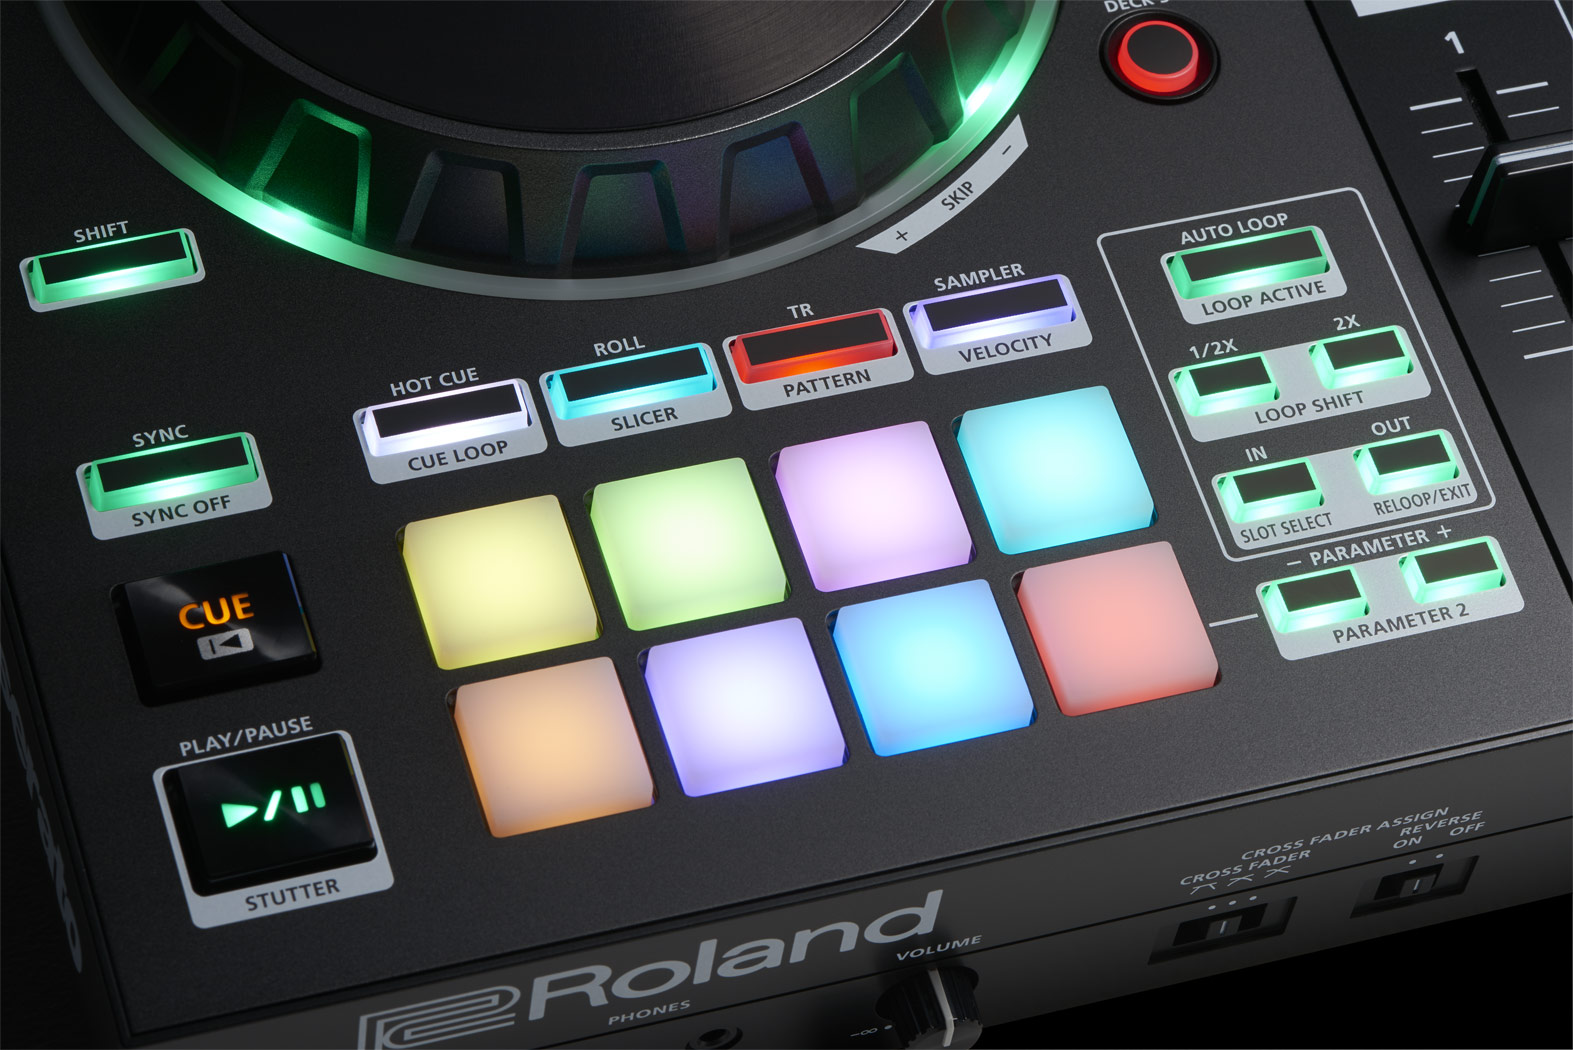 Roland gets you going on their DJ controllers, Serato with free